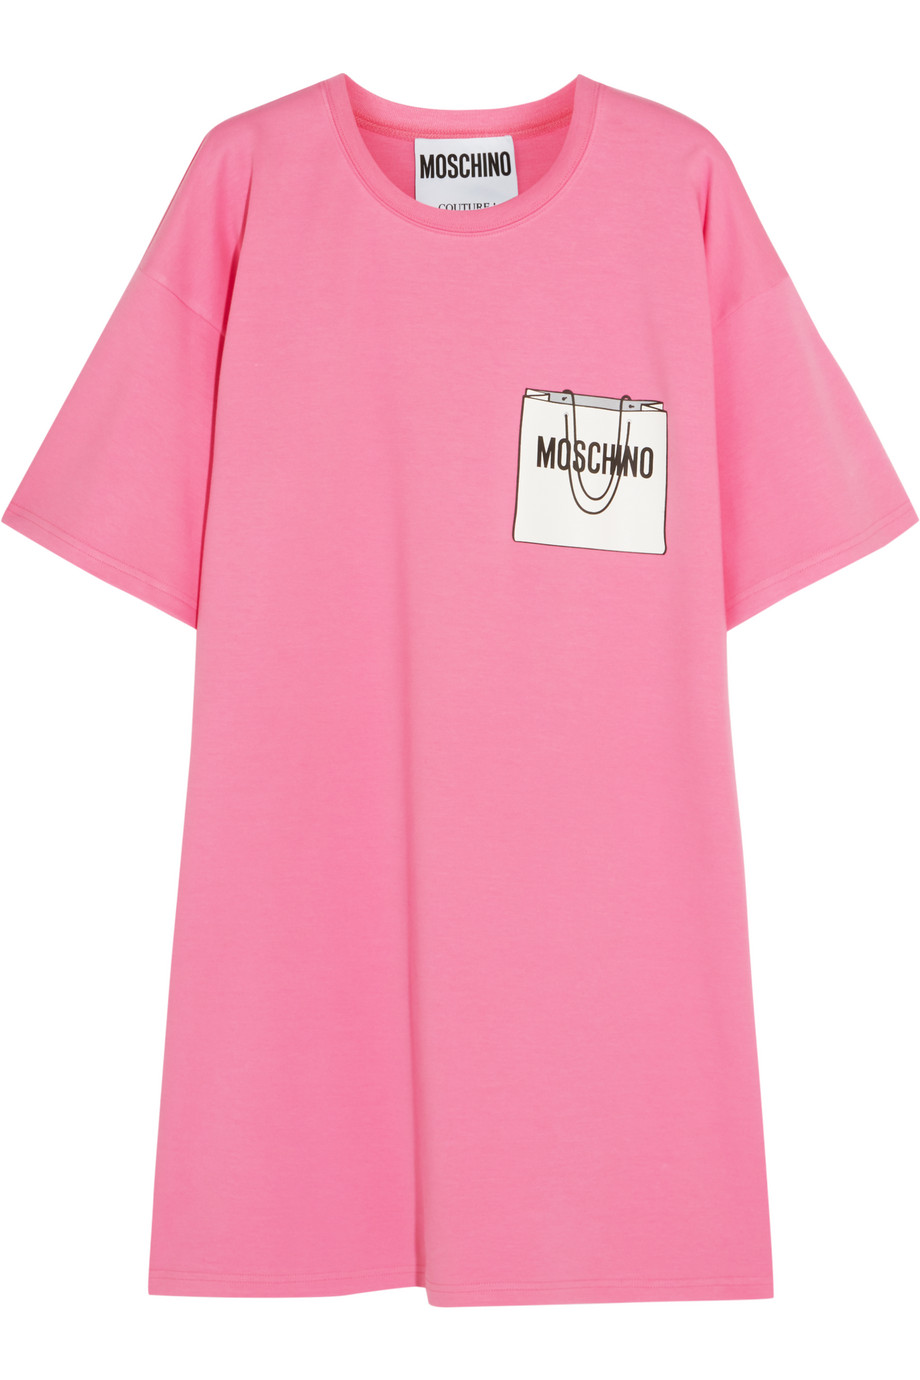 Moschino Printed Cotton-Blend T-Shirt Dress, Pink, Women's - Printed, Size: 42